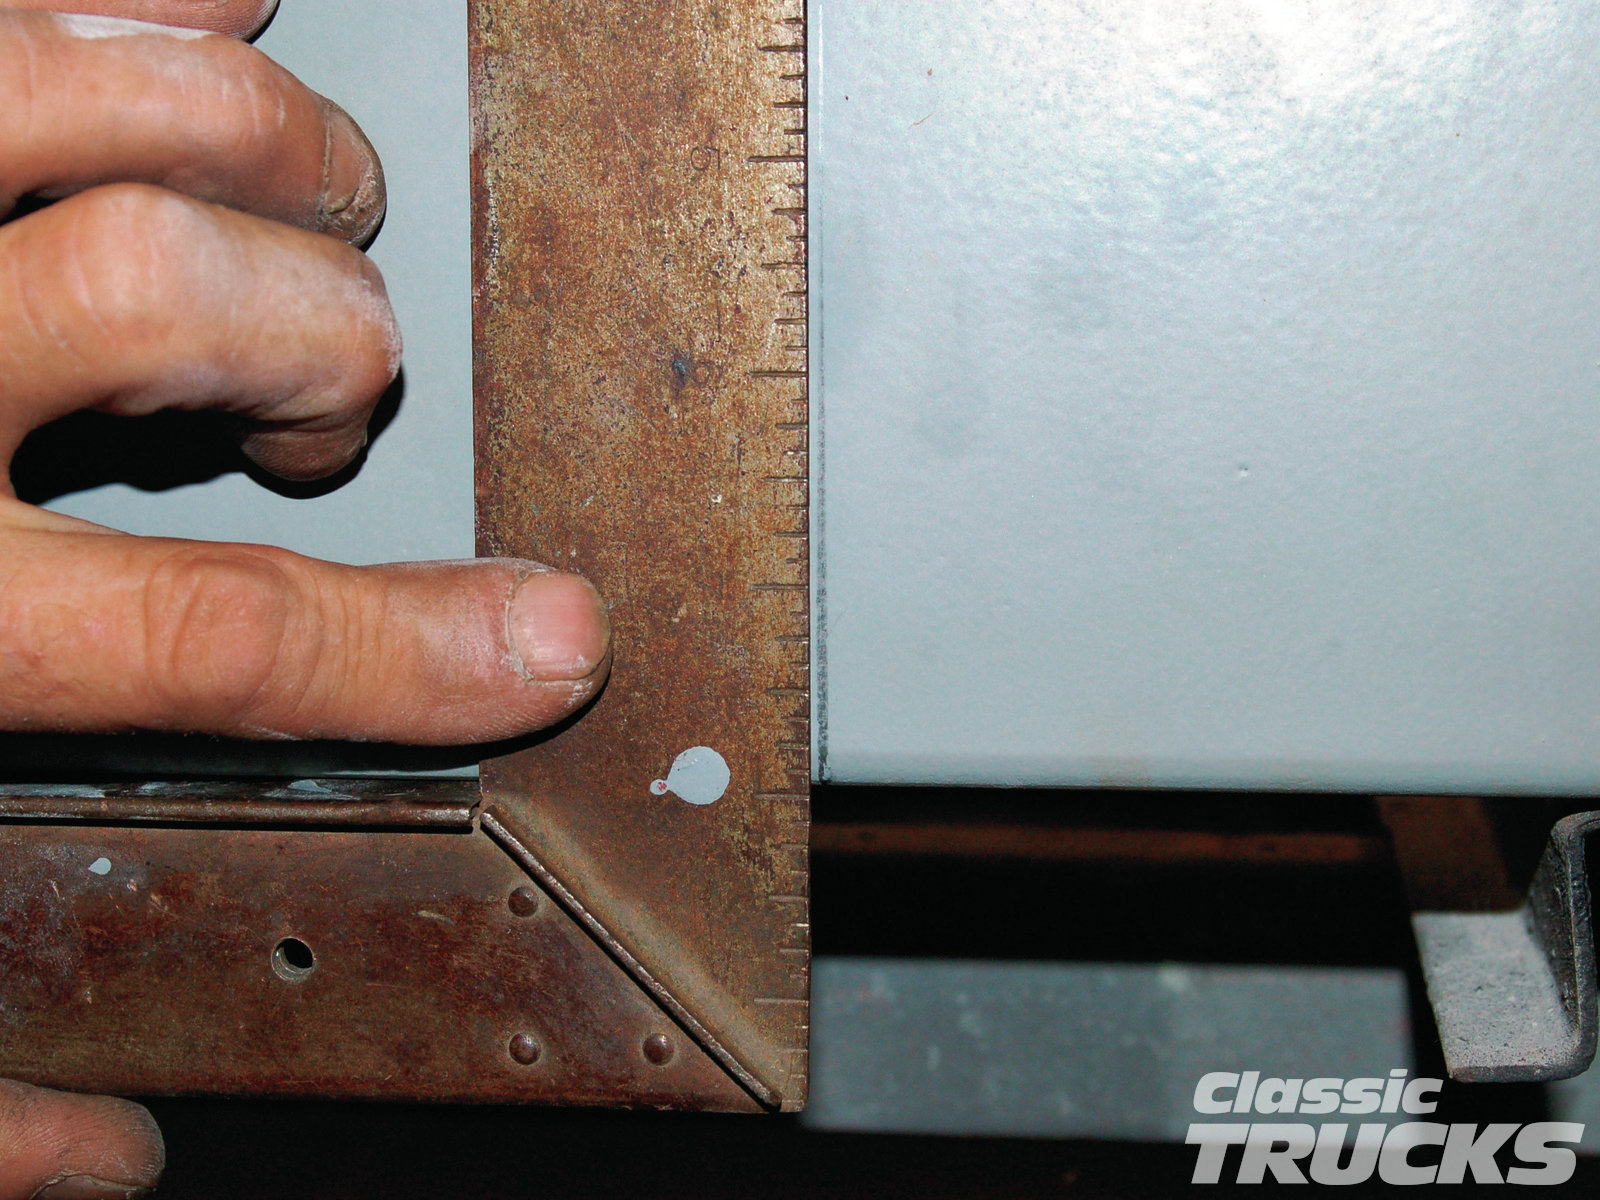 [02] With a square I transfer the line for the edge of the wheelwell to the outside of the bedside.